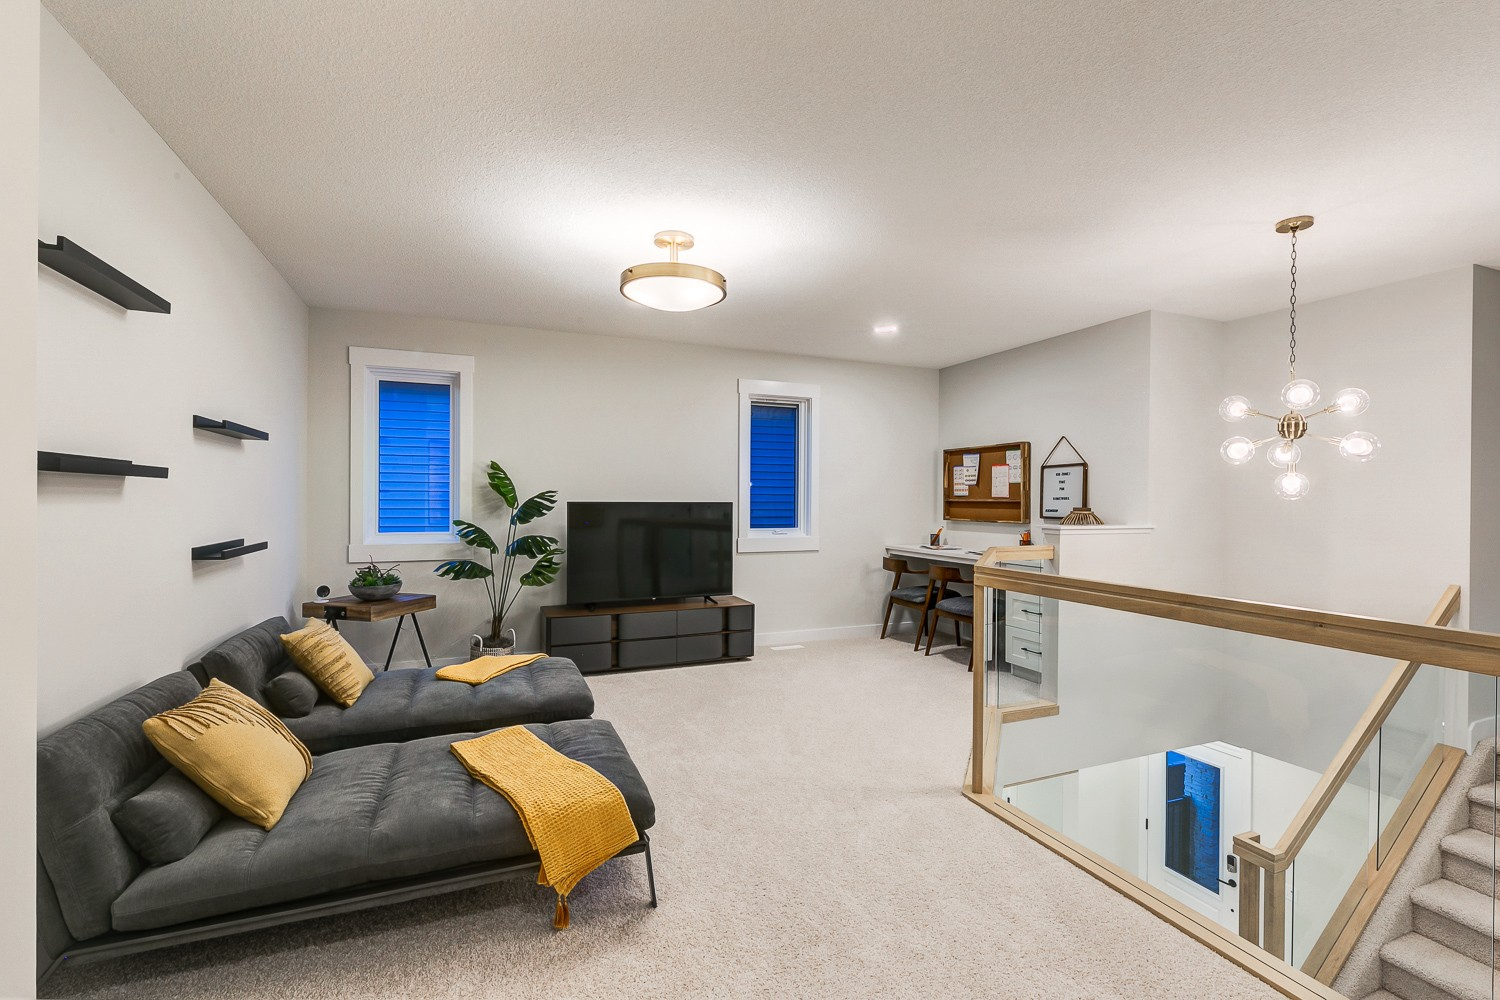 City Home Master Builder Showhome in Kinglet by Big Lake